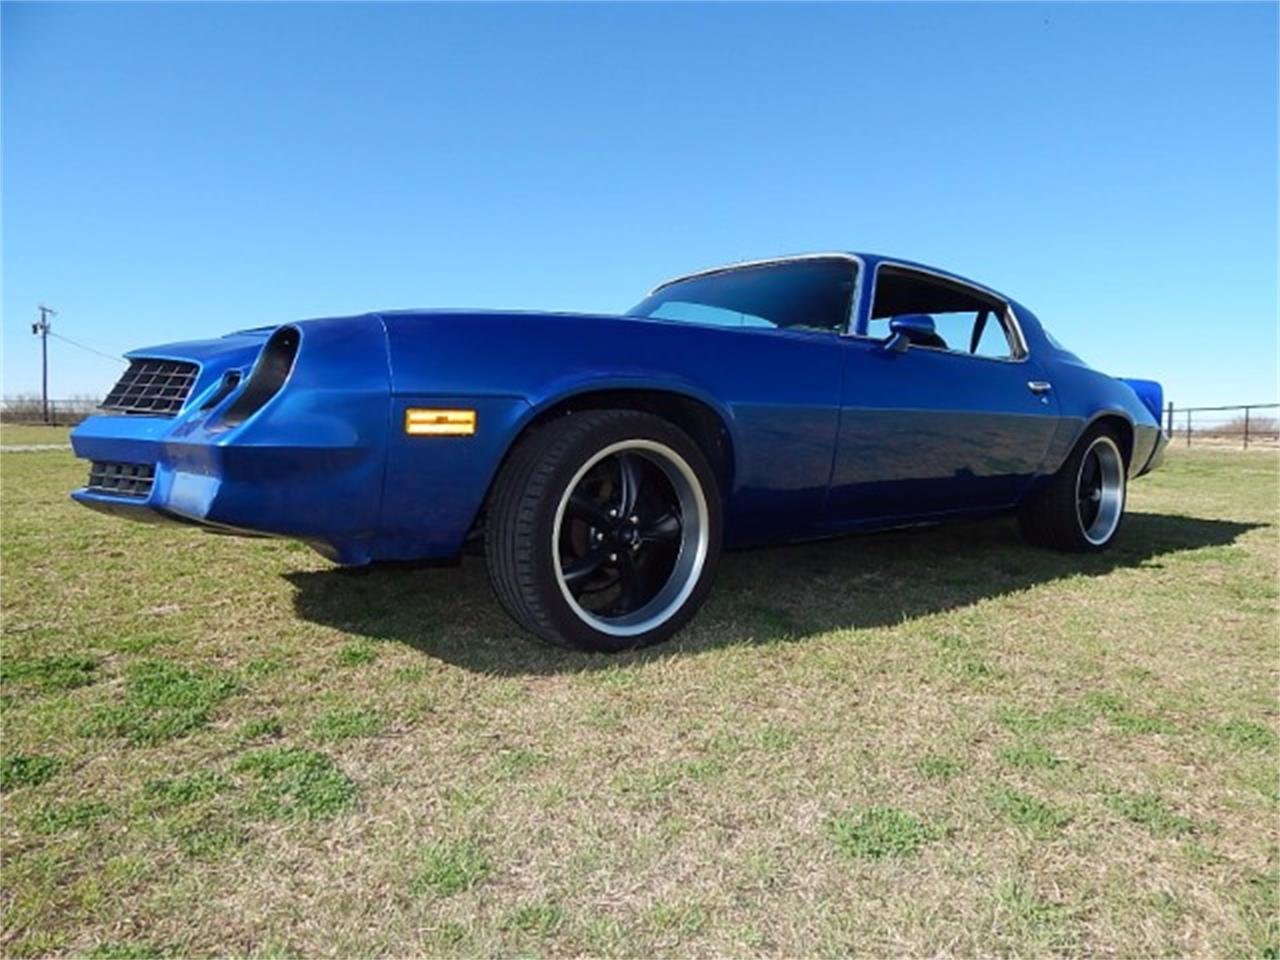 Large Picture of 1979 Chevrolet Camaro located in Texas - $19,900.00 - L8KU